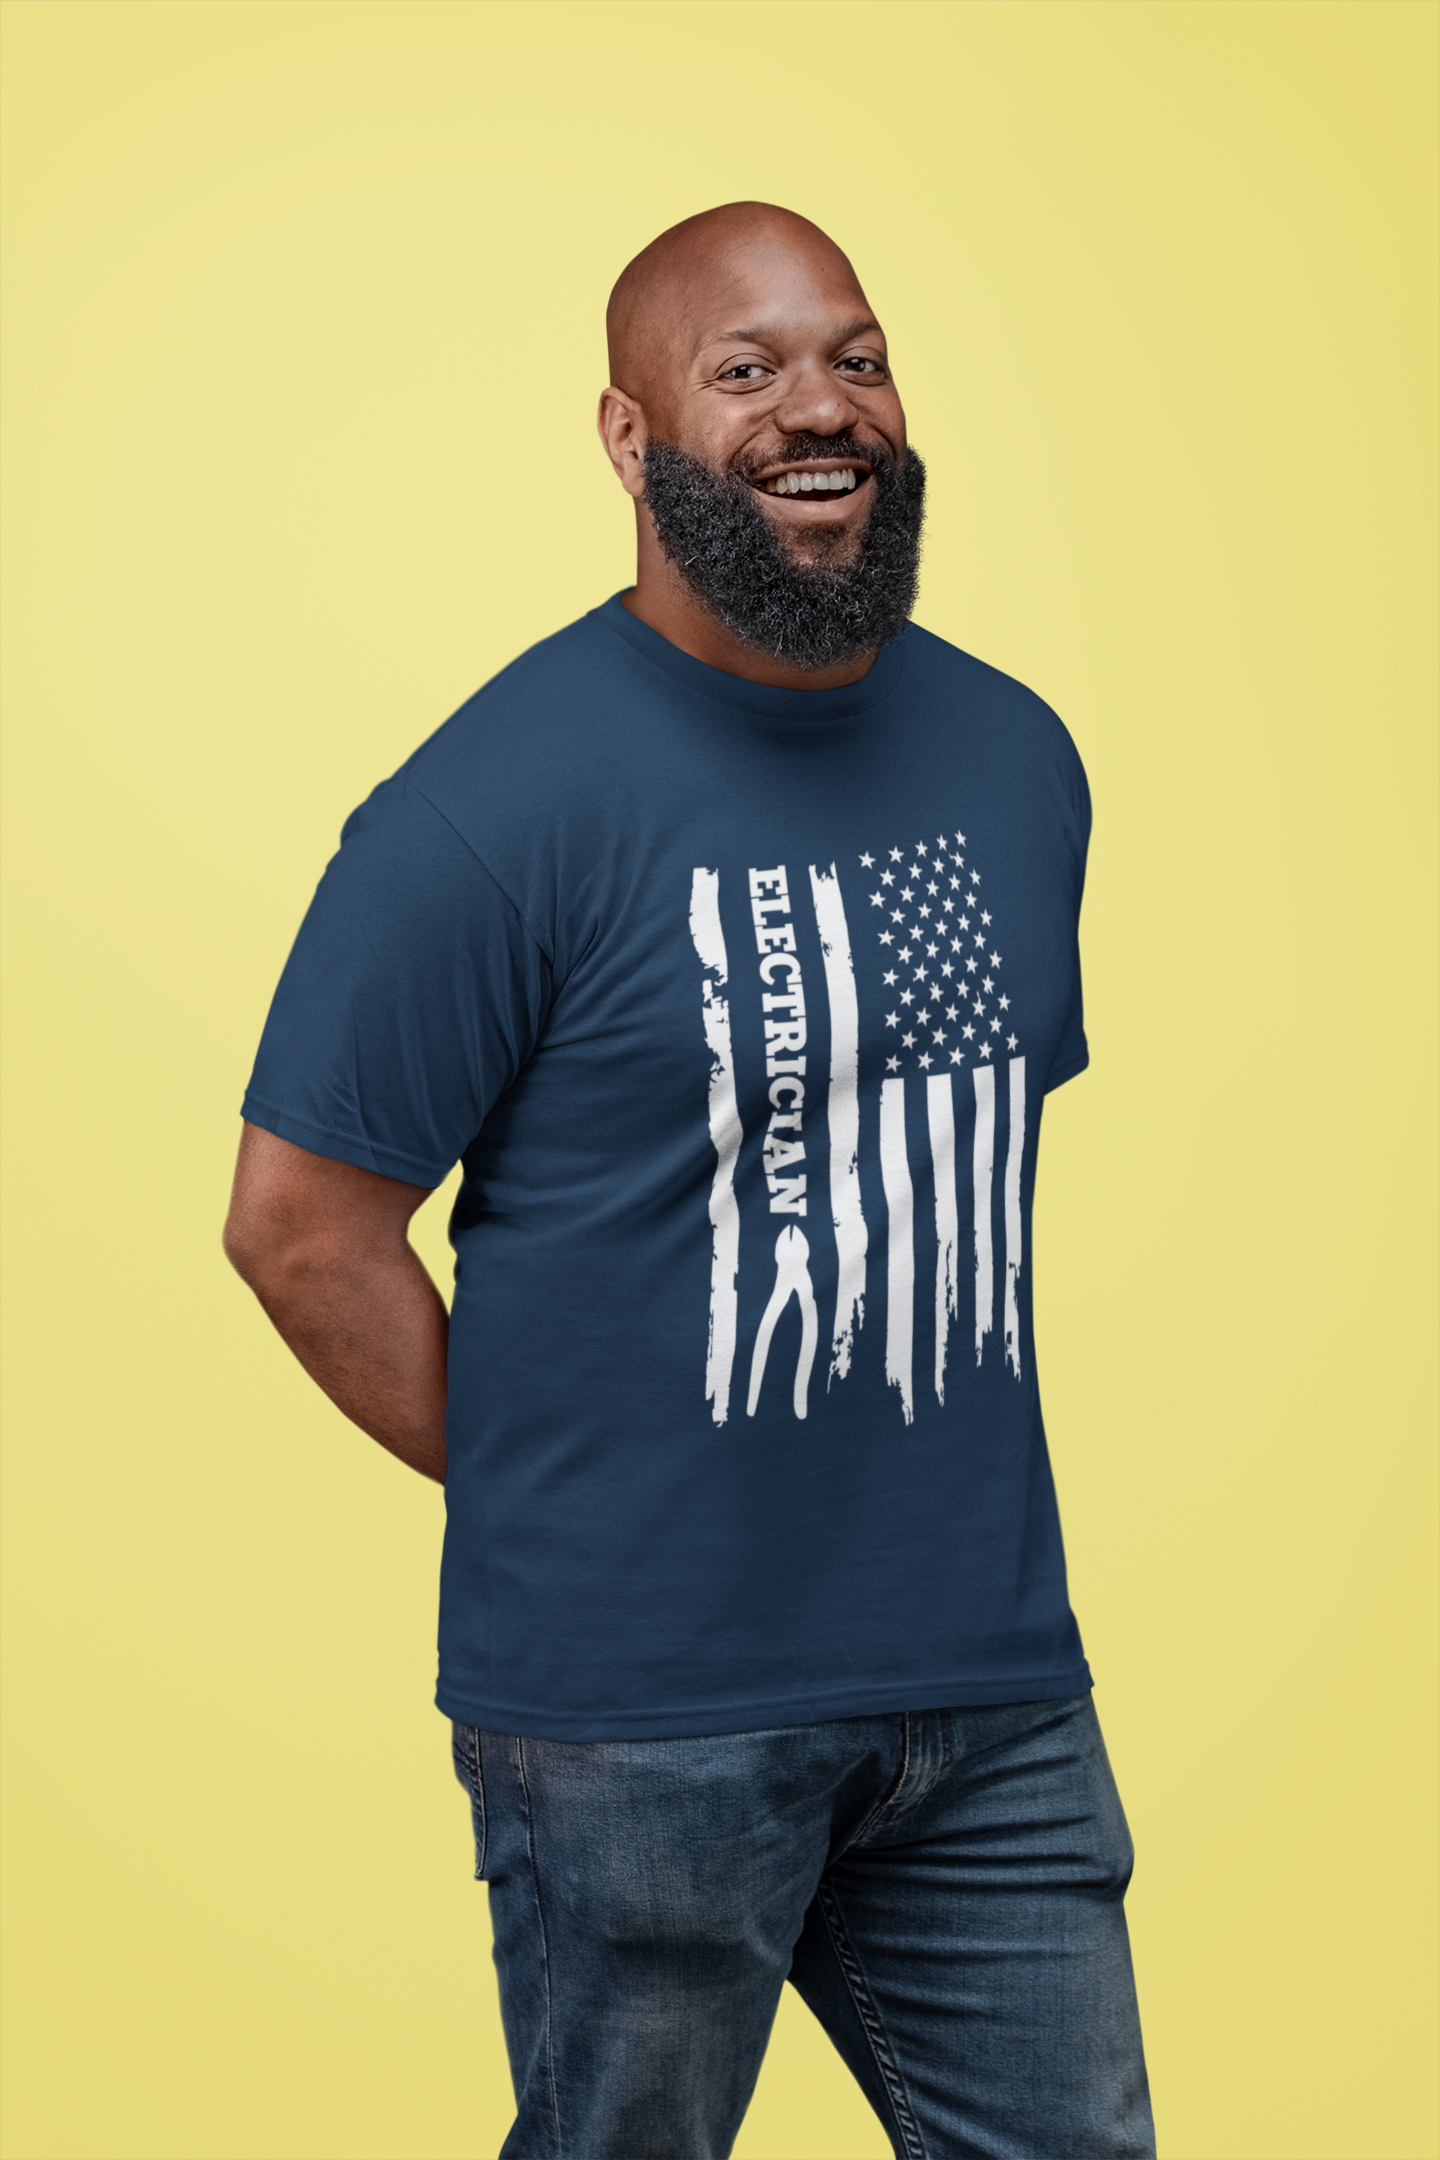 mockup-of-a-smiling-man-with-a-big-beard-wearing-a-t-shirt-21523.png